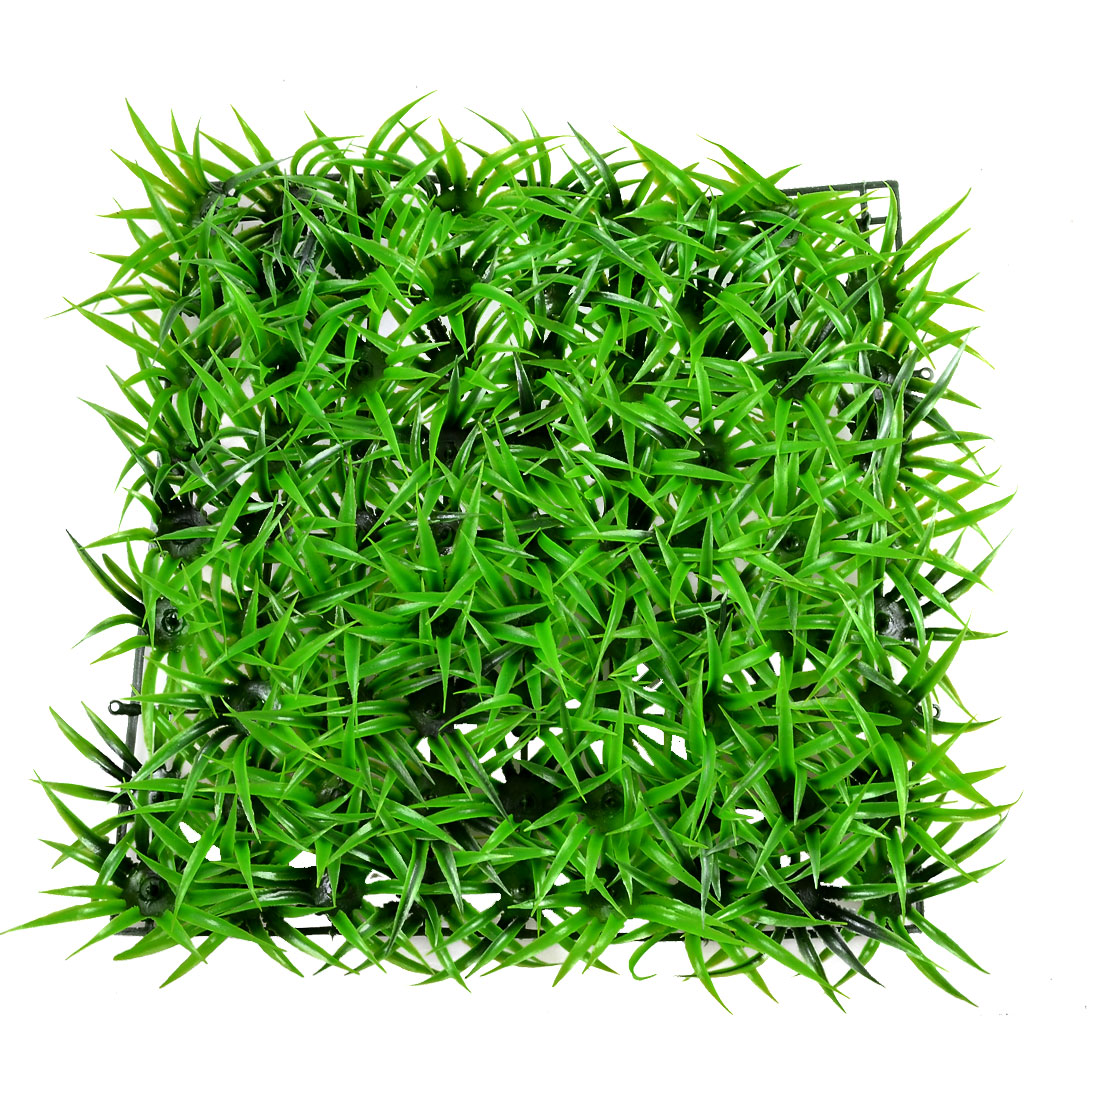 "8.6"" x 8.6"" Artificial Lawn Style Green Ornament Decor for Aquarium"